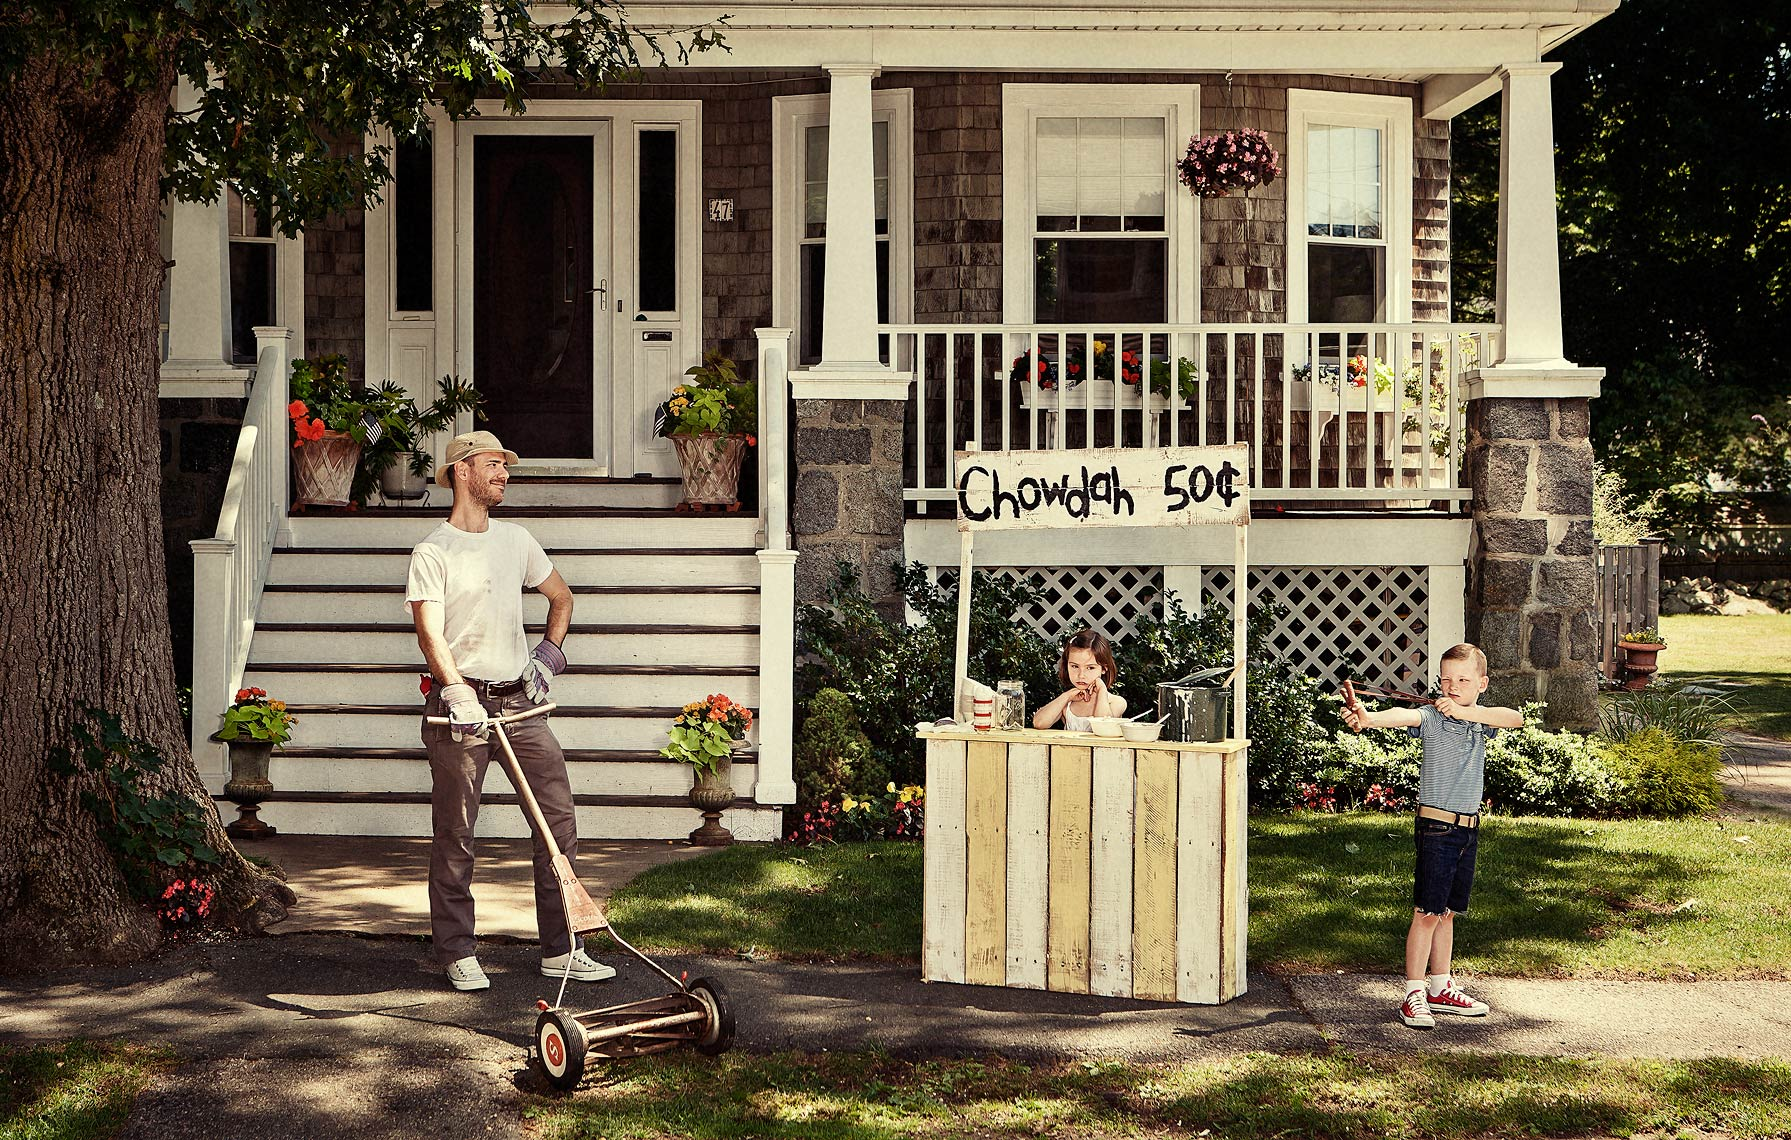 A Norman Rockwell inspired summer in New England - shot for Canon USA